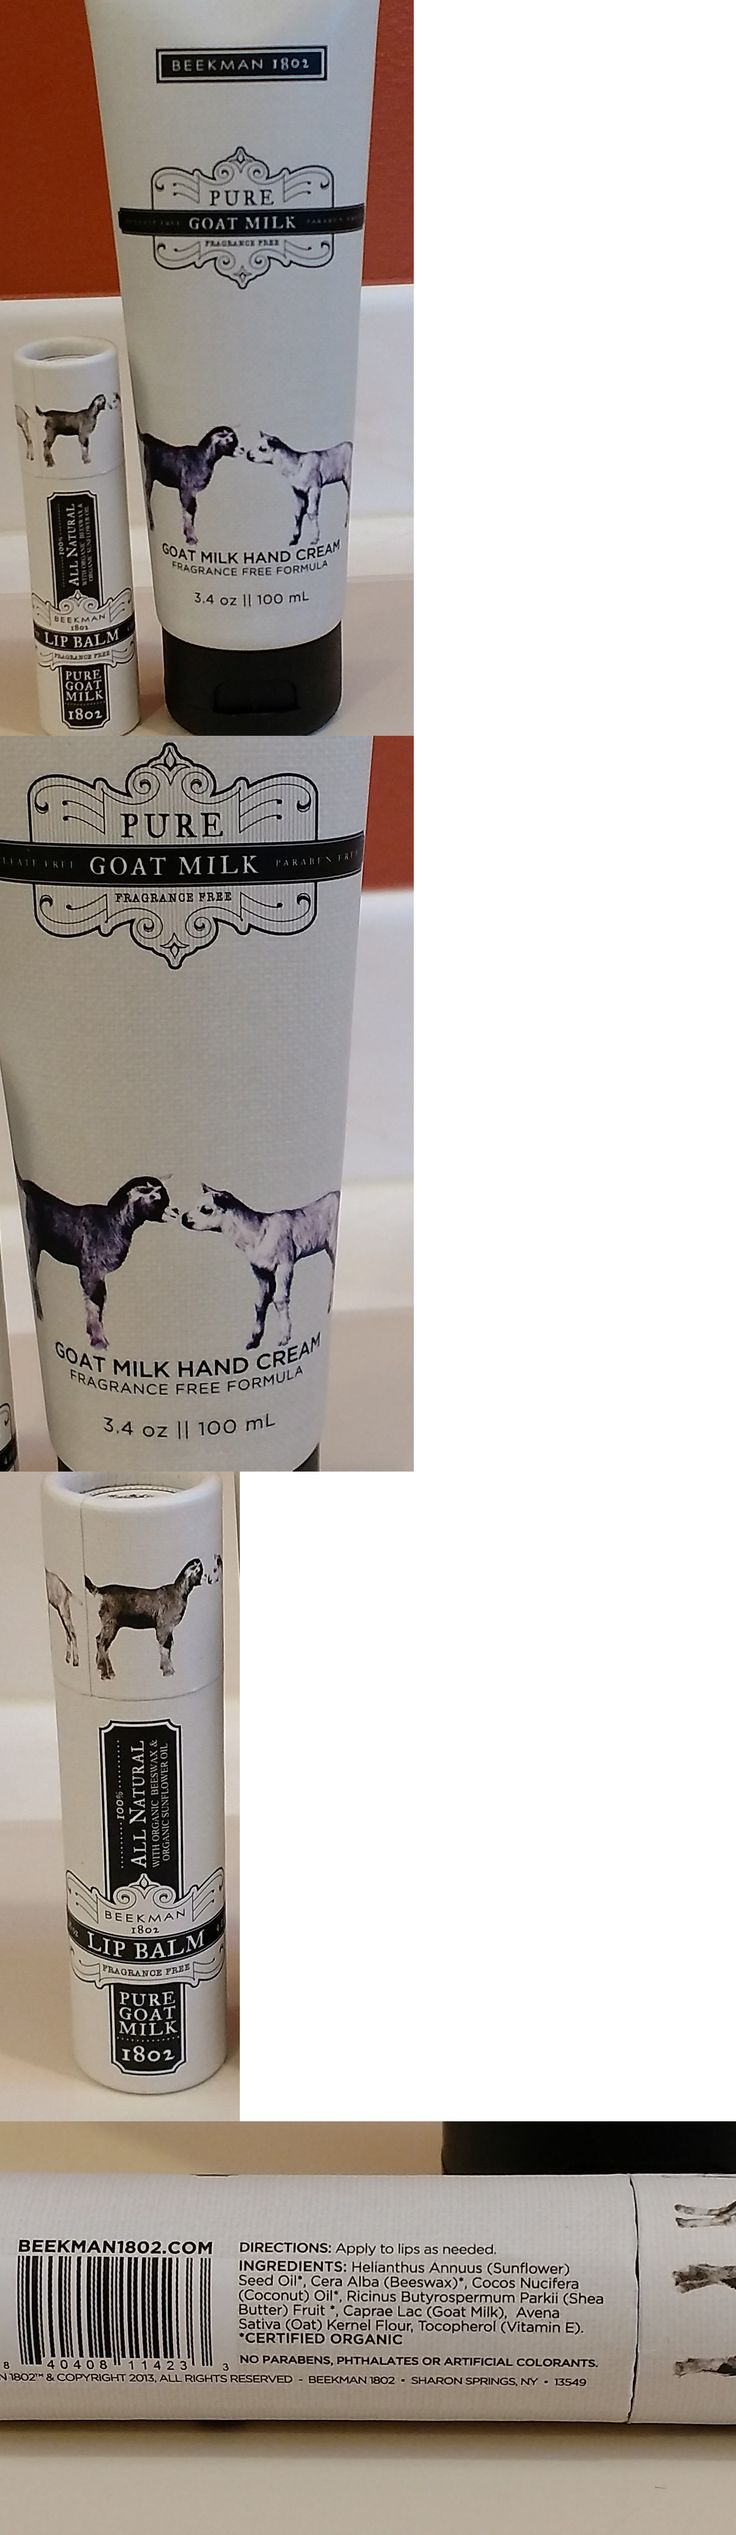 Lip Balm and Treatments: Beekman 1802 Pure Goat Milk Hand Cream 3.4Oz And Lip Balm Fragrance Free, Organic -> BUY IT NOW ONLY: $32.0 on eBay!